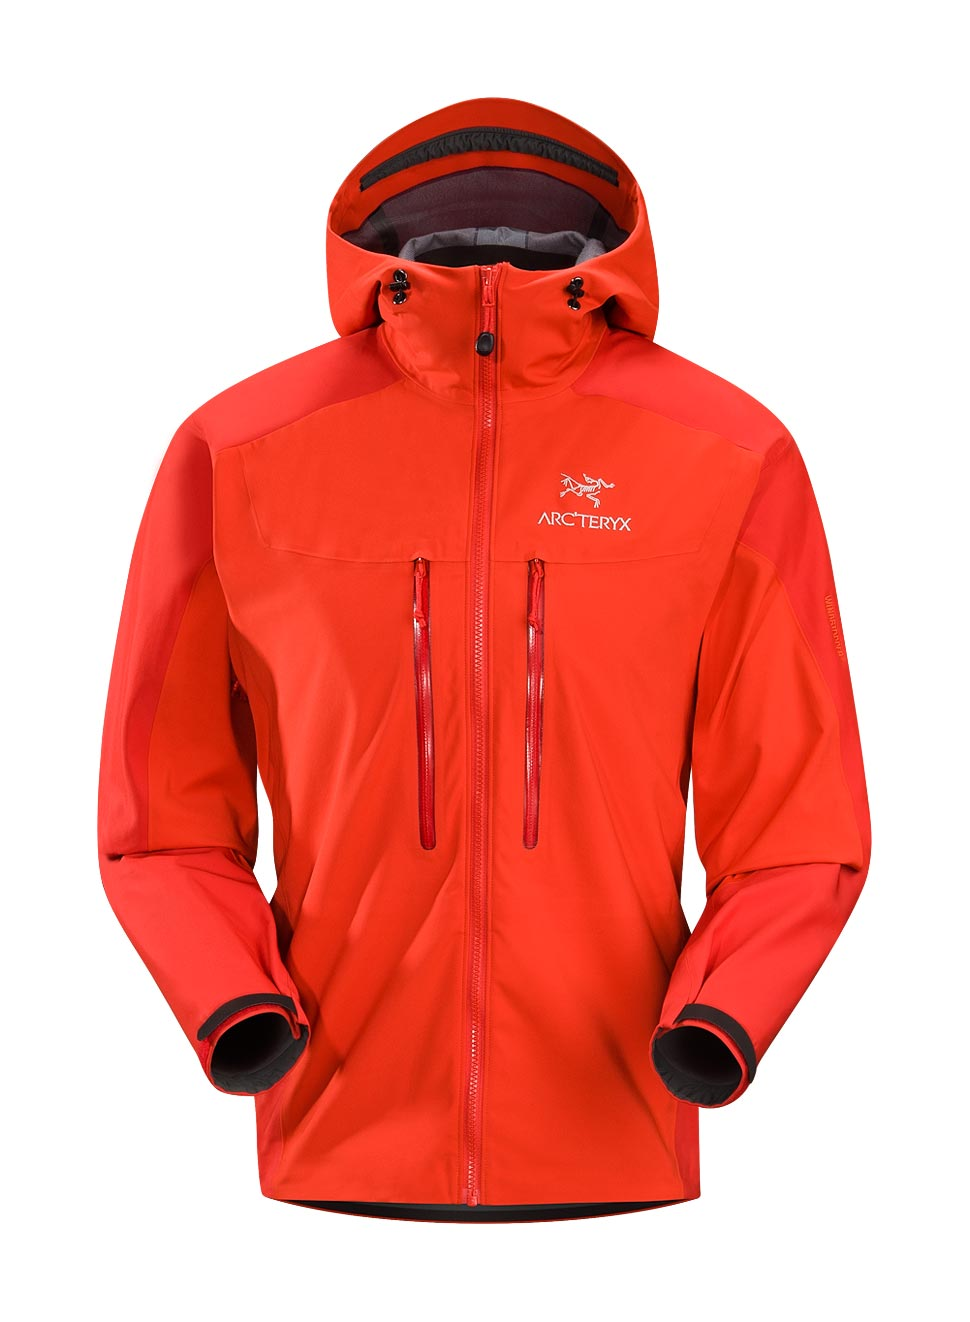 Arcteryx Jackets Men Road Rash Red Venta MX Hoody